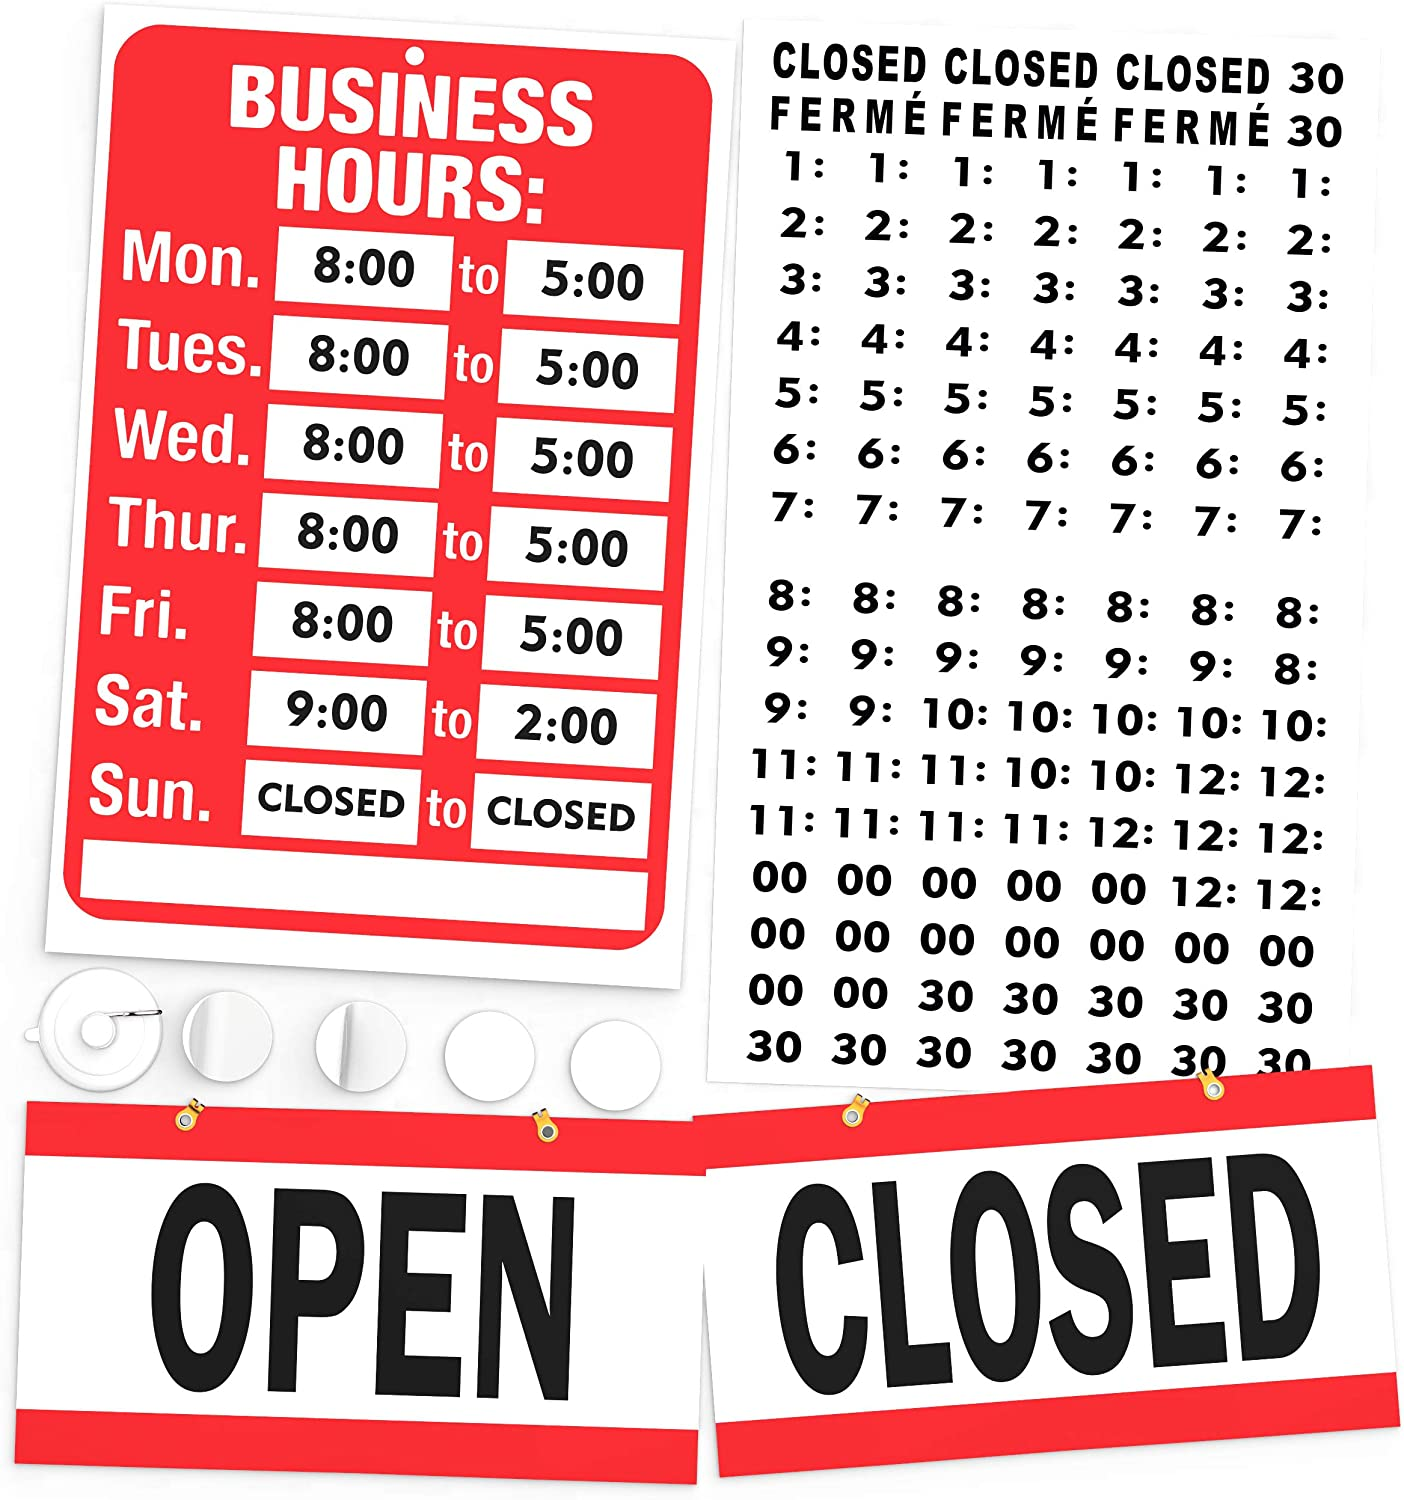 Open Closed Sign, Business Hours Sign Kit - Bright Red and White Colors - Includes 4 Double Sided Adhesive Pads and a Black Number Sticker Set - Ideal Signs for Any Store, Business, Office